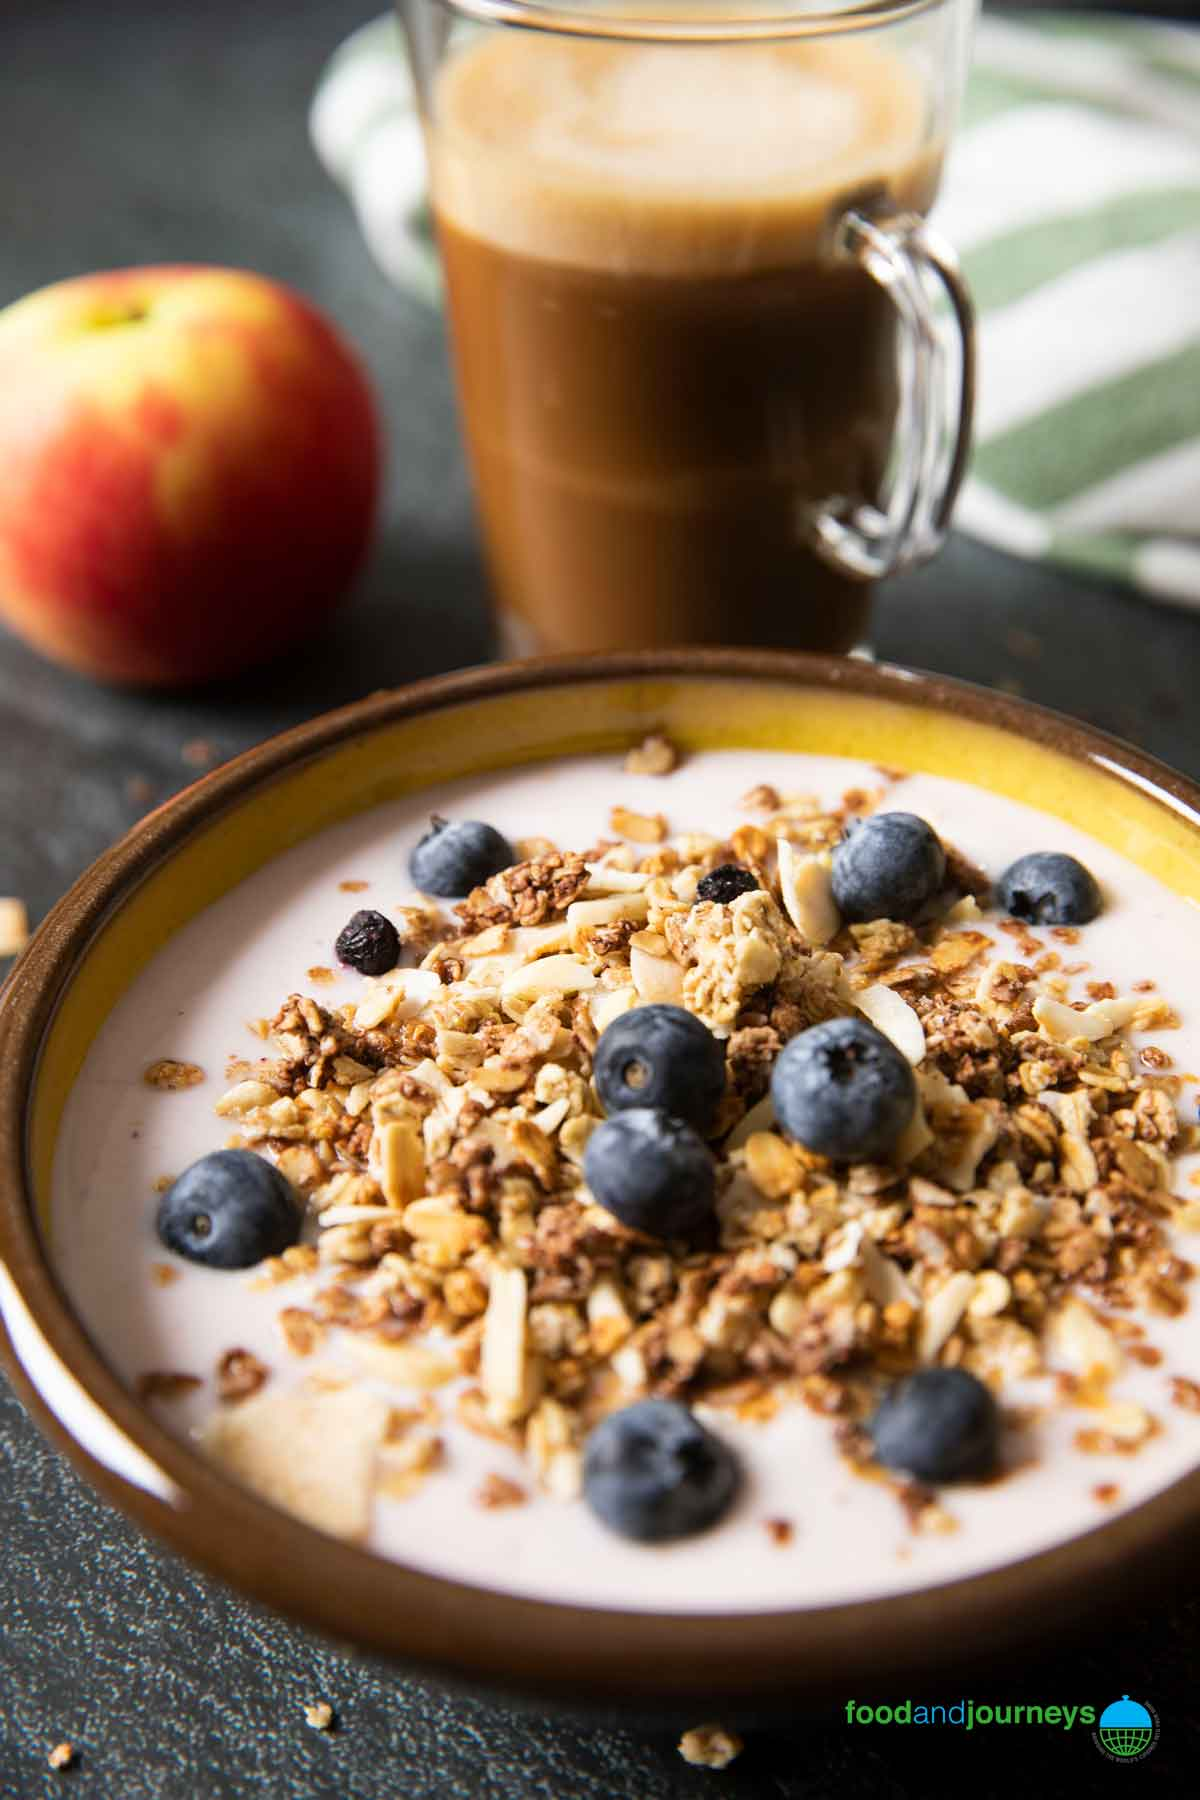 A bowl of muesli and light yogurt, with a mug of coffee and an apple in the background.